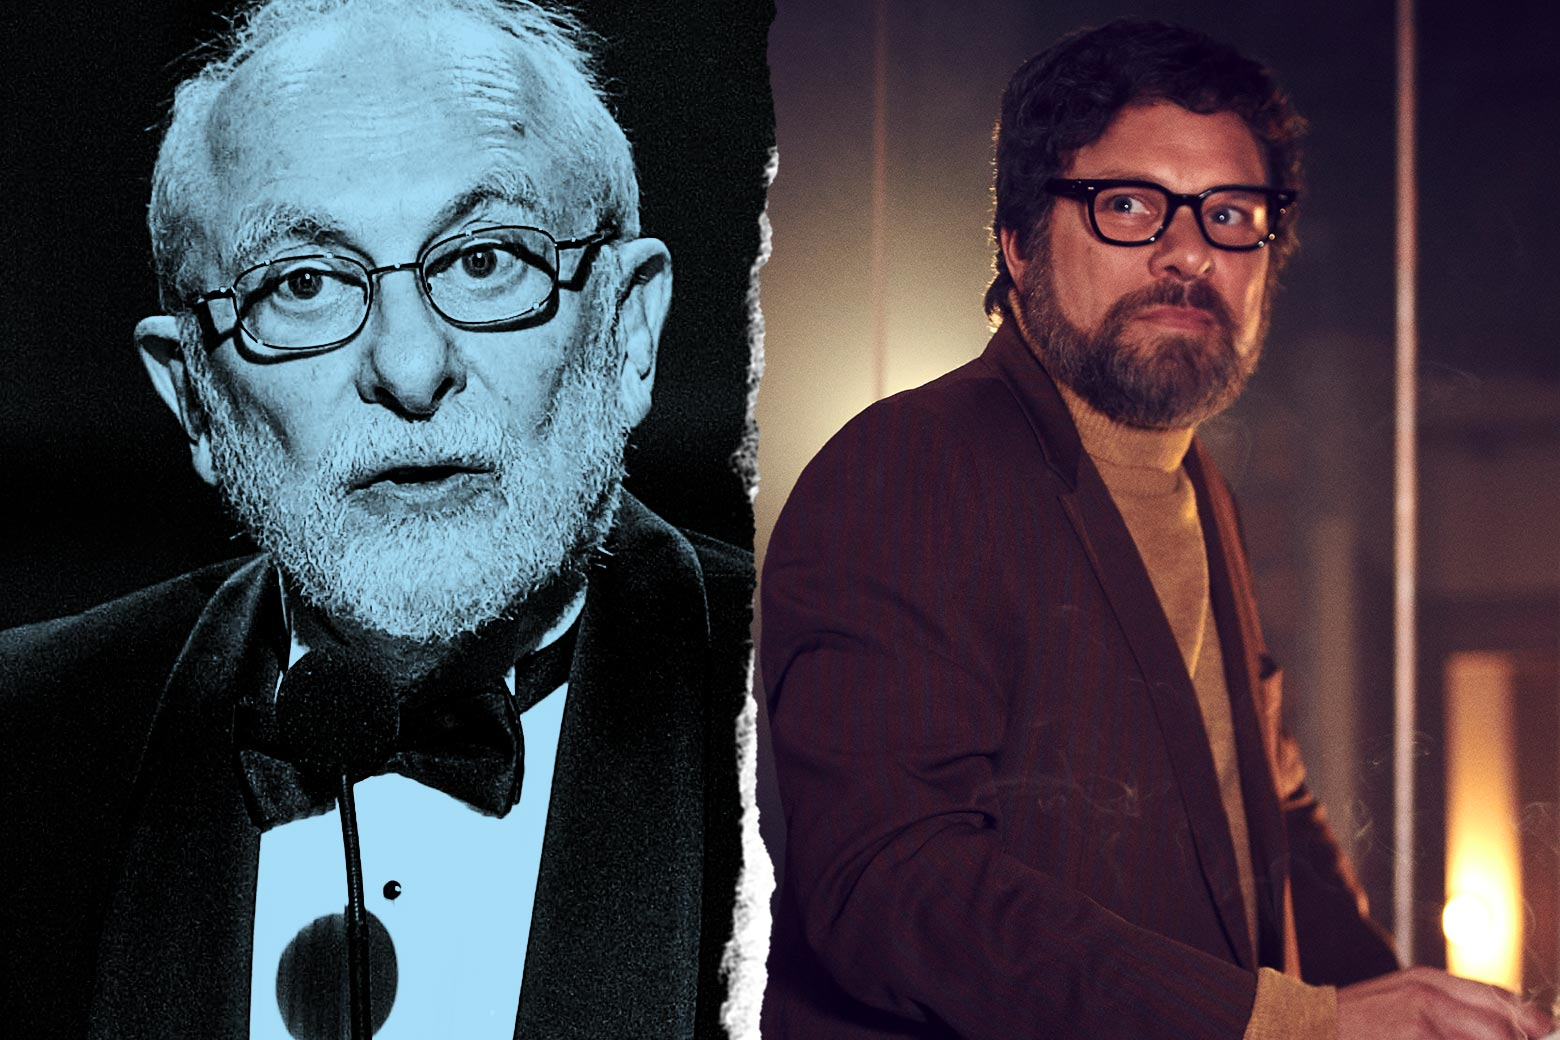 Photo illustration of Paddy Chayefsky and Norbert Leo Butz as Paddy Chayefsky.